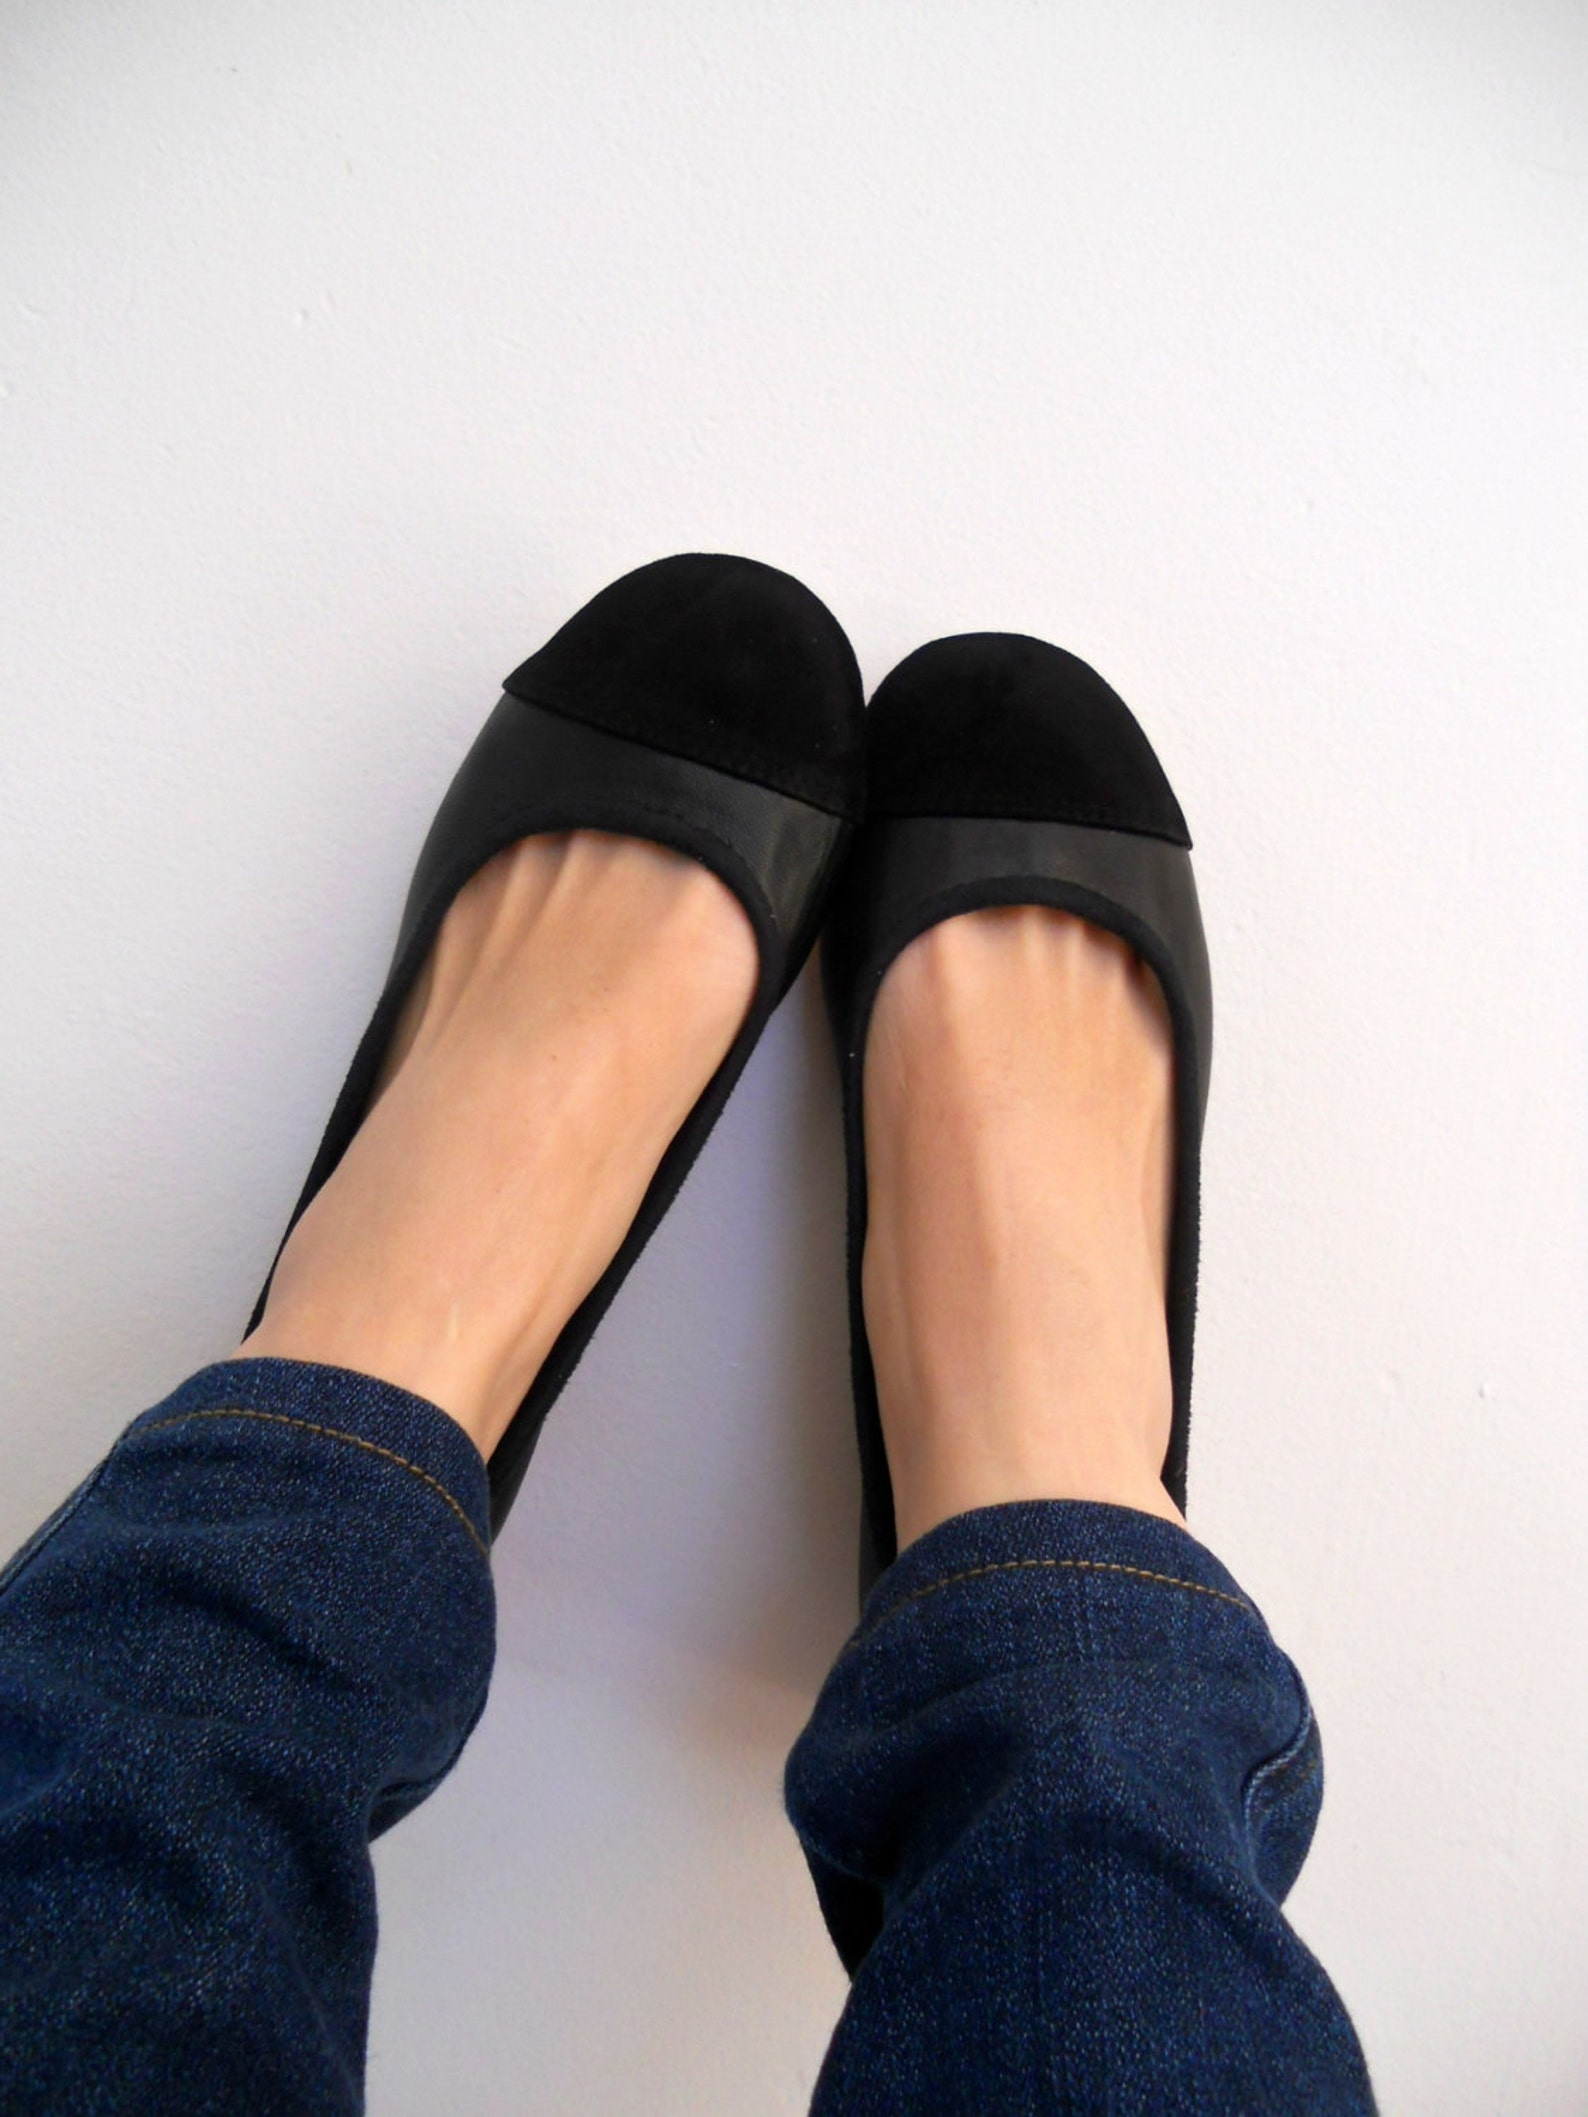 zoe. ballet flats/ women's leather shoes/ black leather suede flat shoes. available in different colours & sizes